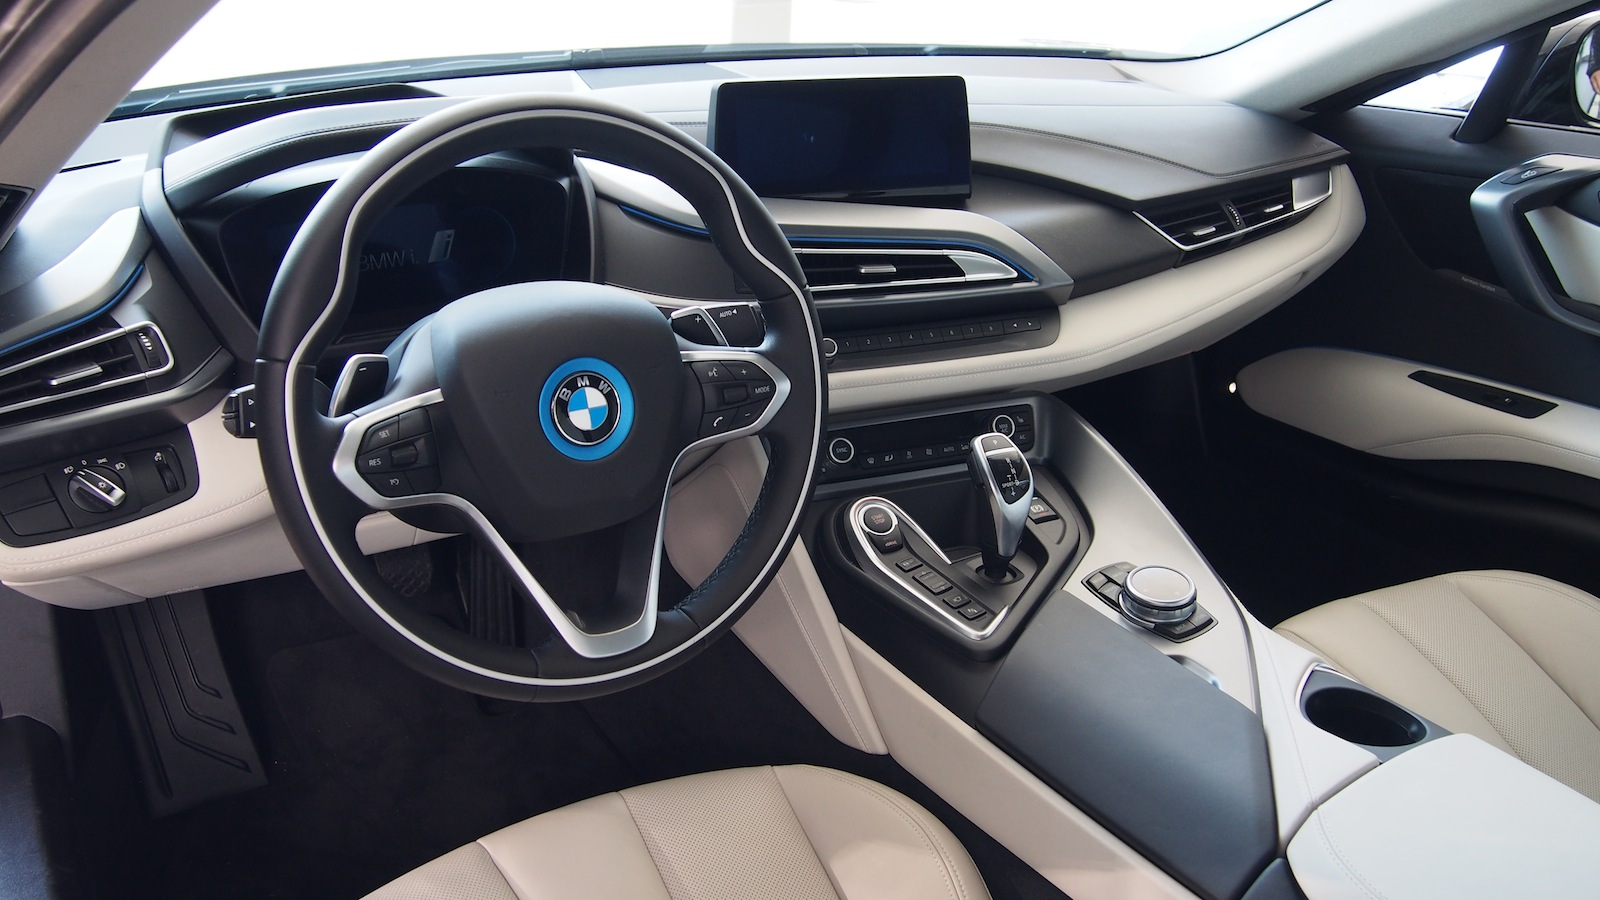 2015 bmw i8 quick look and facts cars photos test. Black Bedroom Furniture Sets. Home Design Ideas